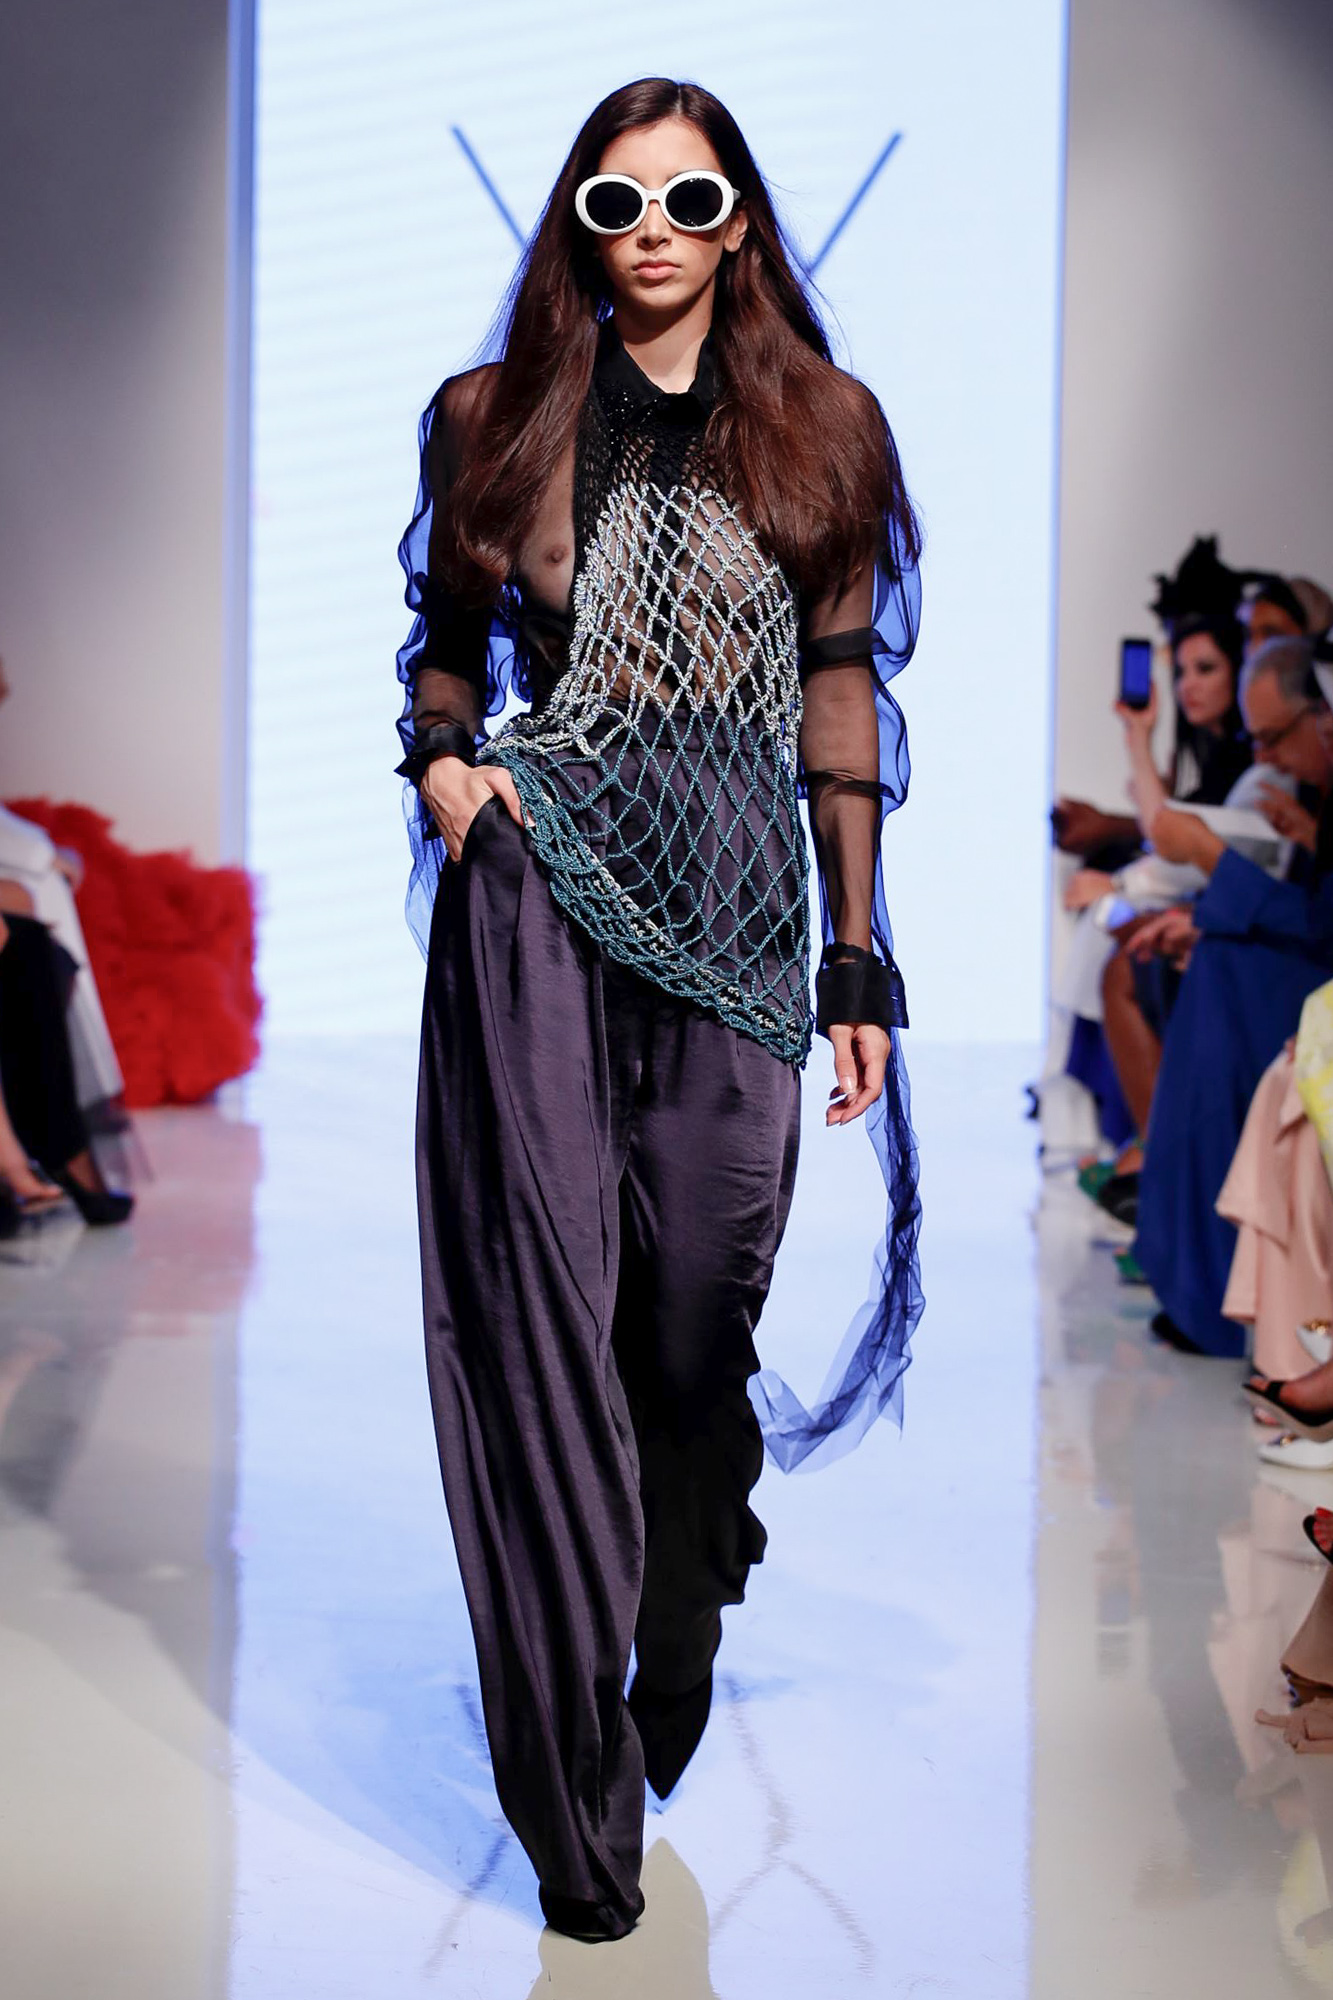 YLY-Studio-Arab-Fashion-Week-SS20-Dubai-5812